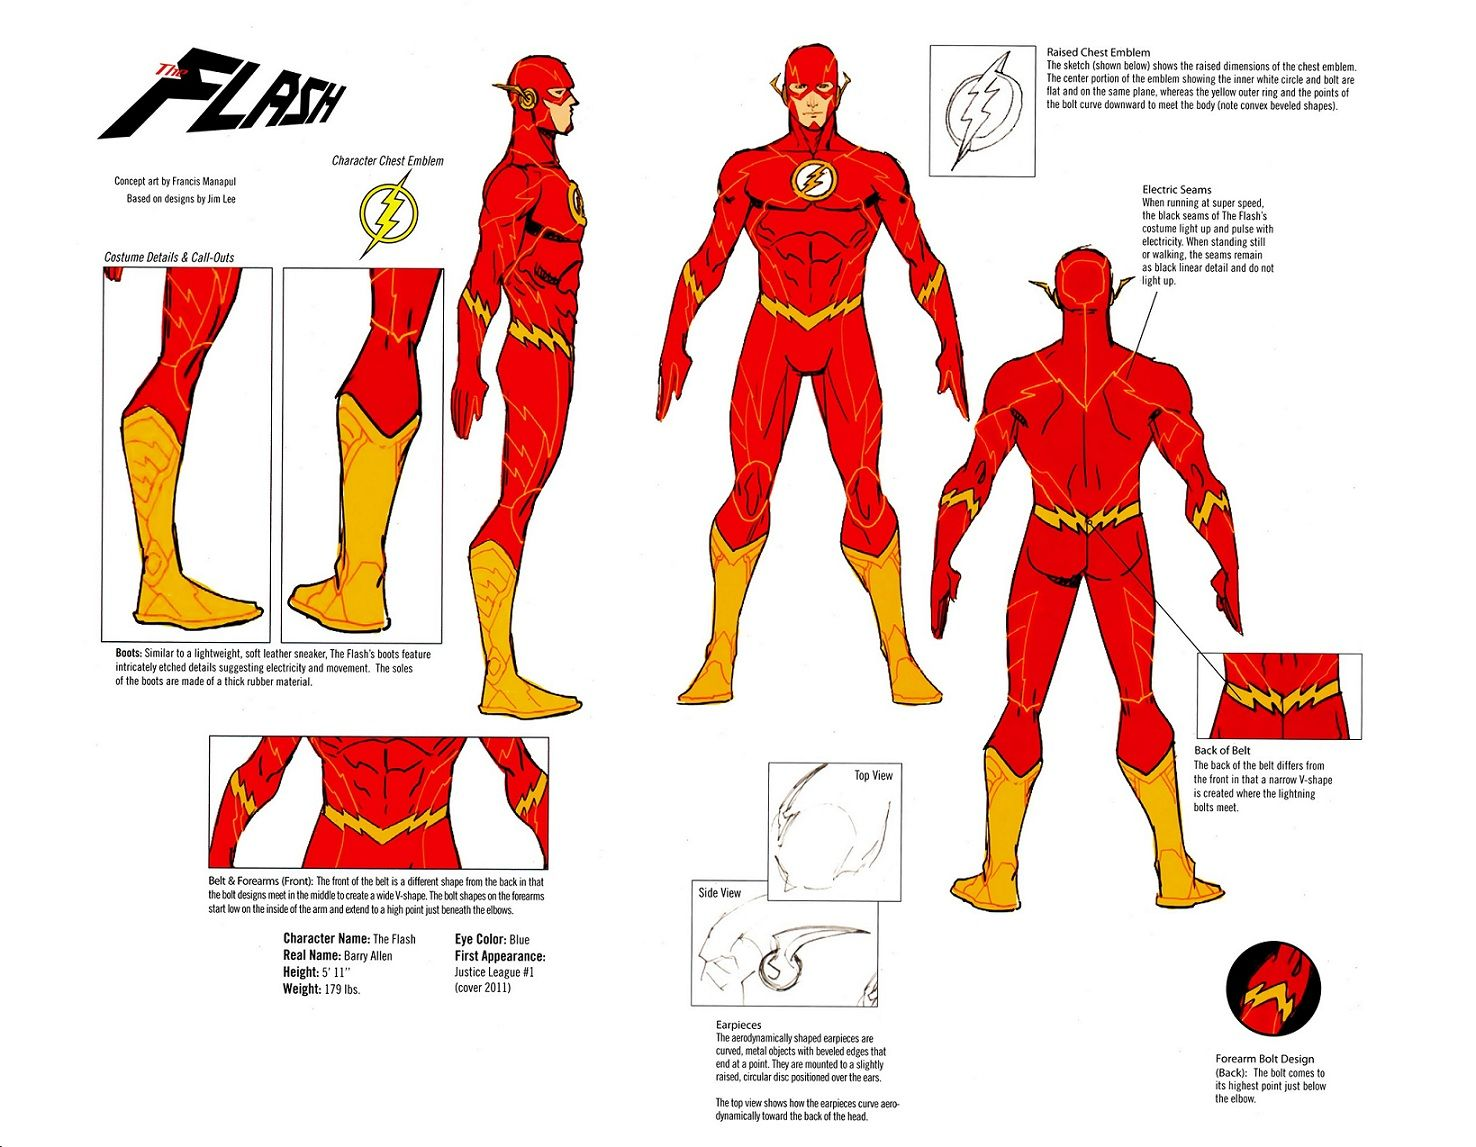 Hereu0027s The New 52 Costume Design Of The Flash. He Has A Lot Of Lines On His  Costume. It Looks Cool When Heu0027s Running Though.